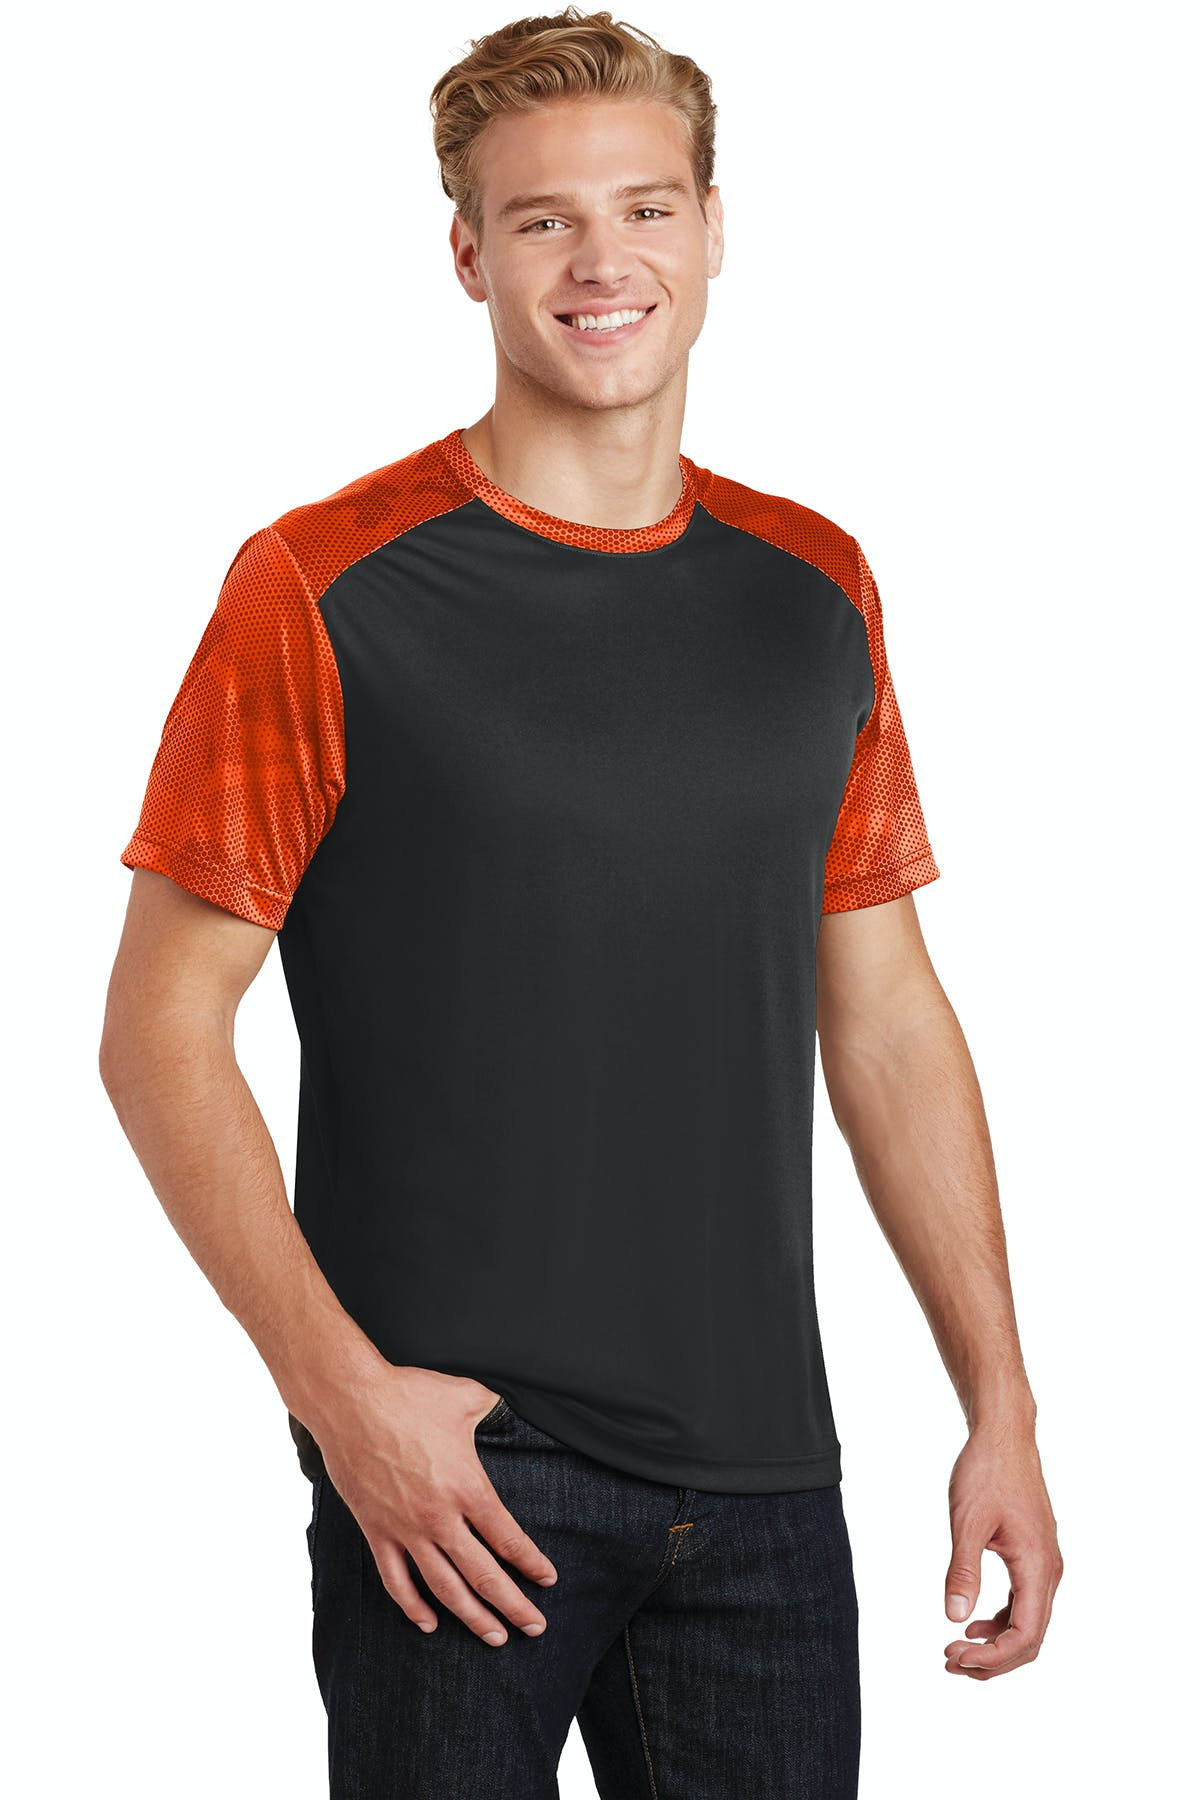 Sport-Tek® CamoHex Colorblock Tee - sold by PRINT CITY GRAPHICS, INC